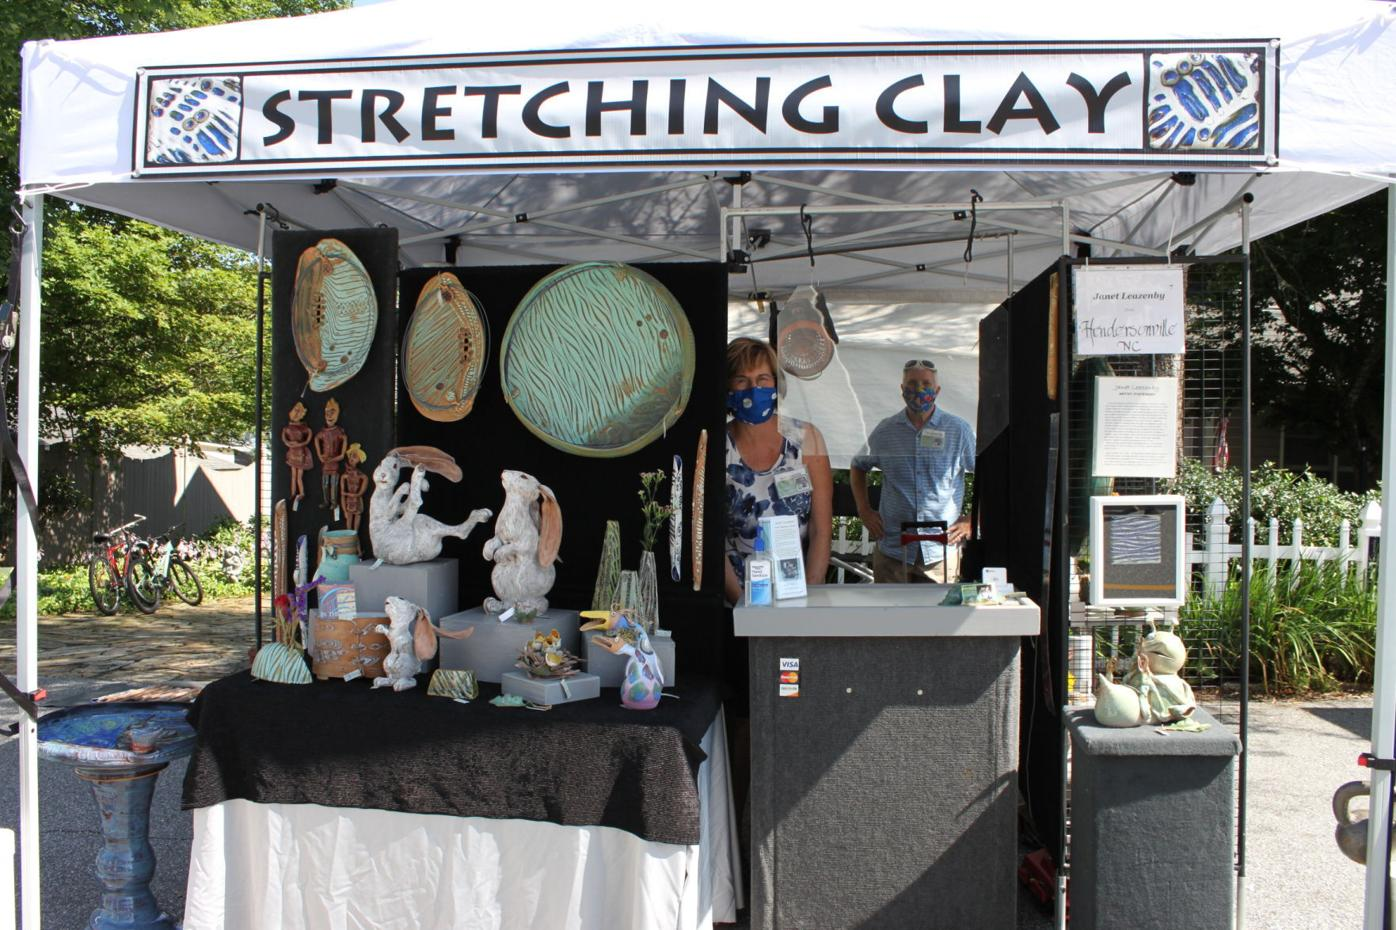 Stretching Clay